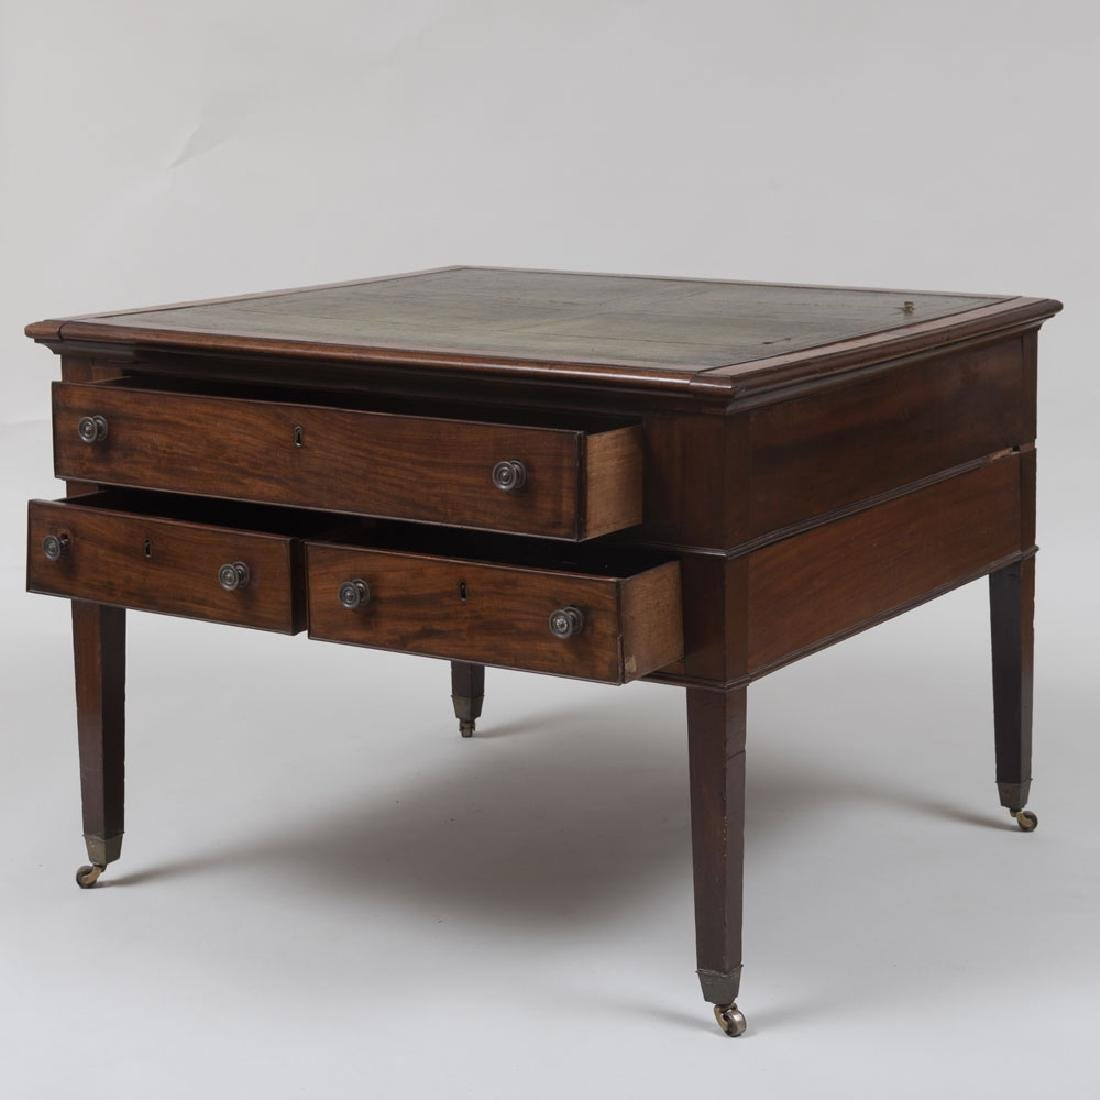 Late George III Mahogany Partner's Desk - 6